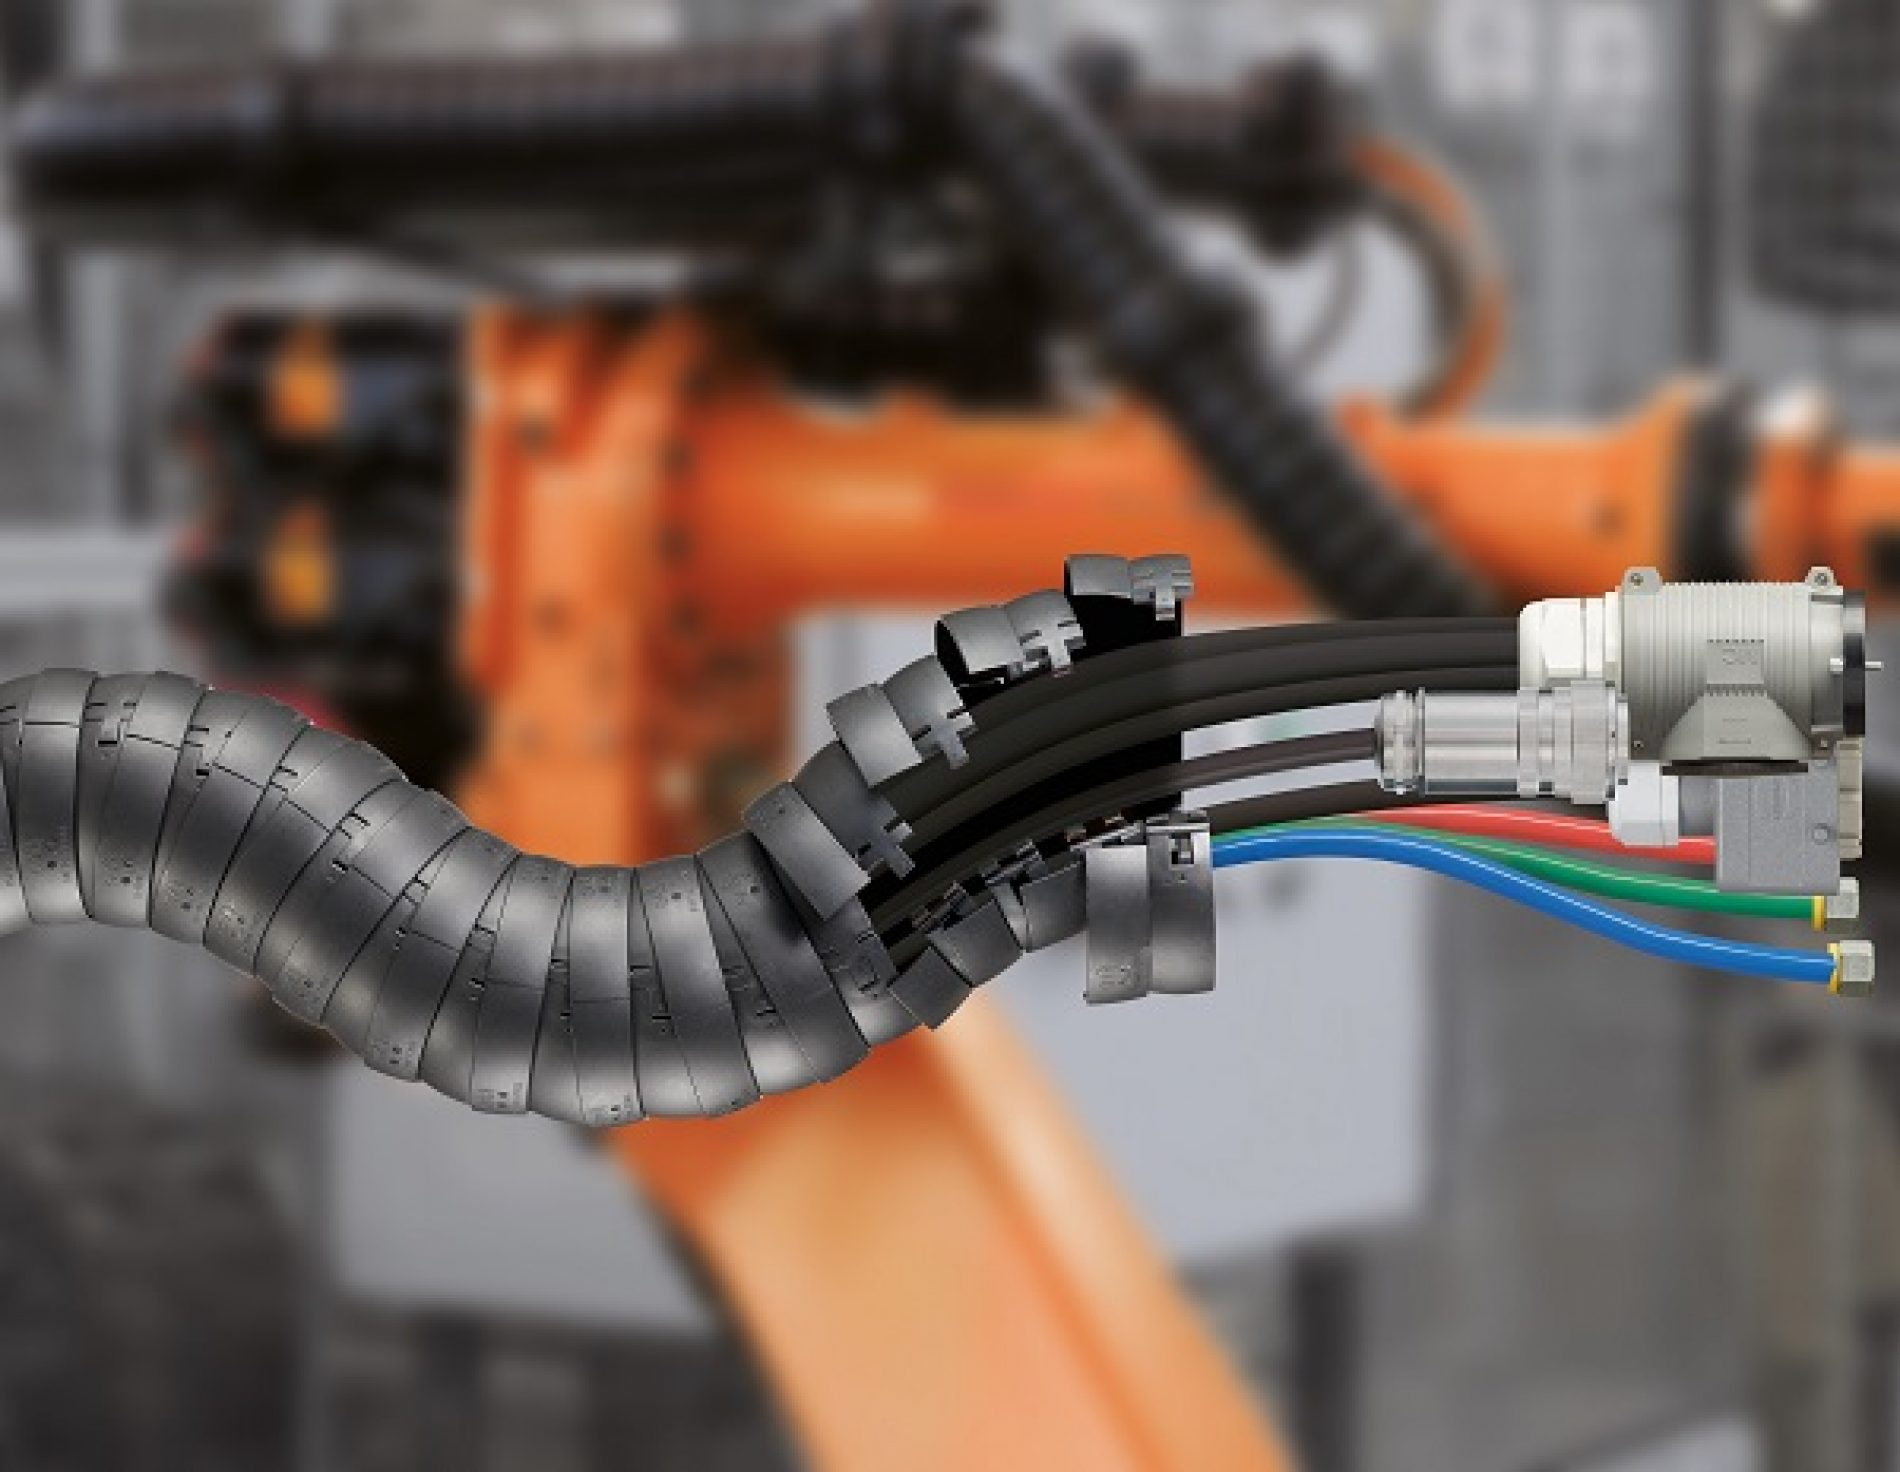 igus-energy-chain-for-welding-robot-applications-PM5616-1-low-1900x1472_c